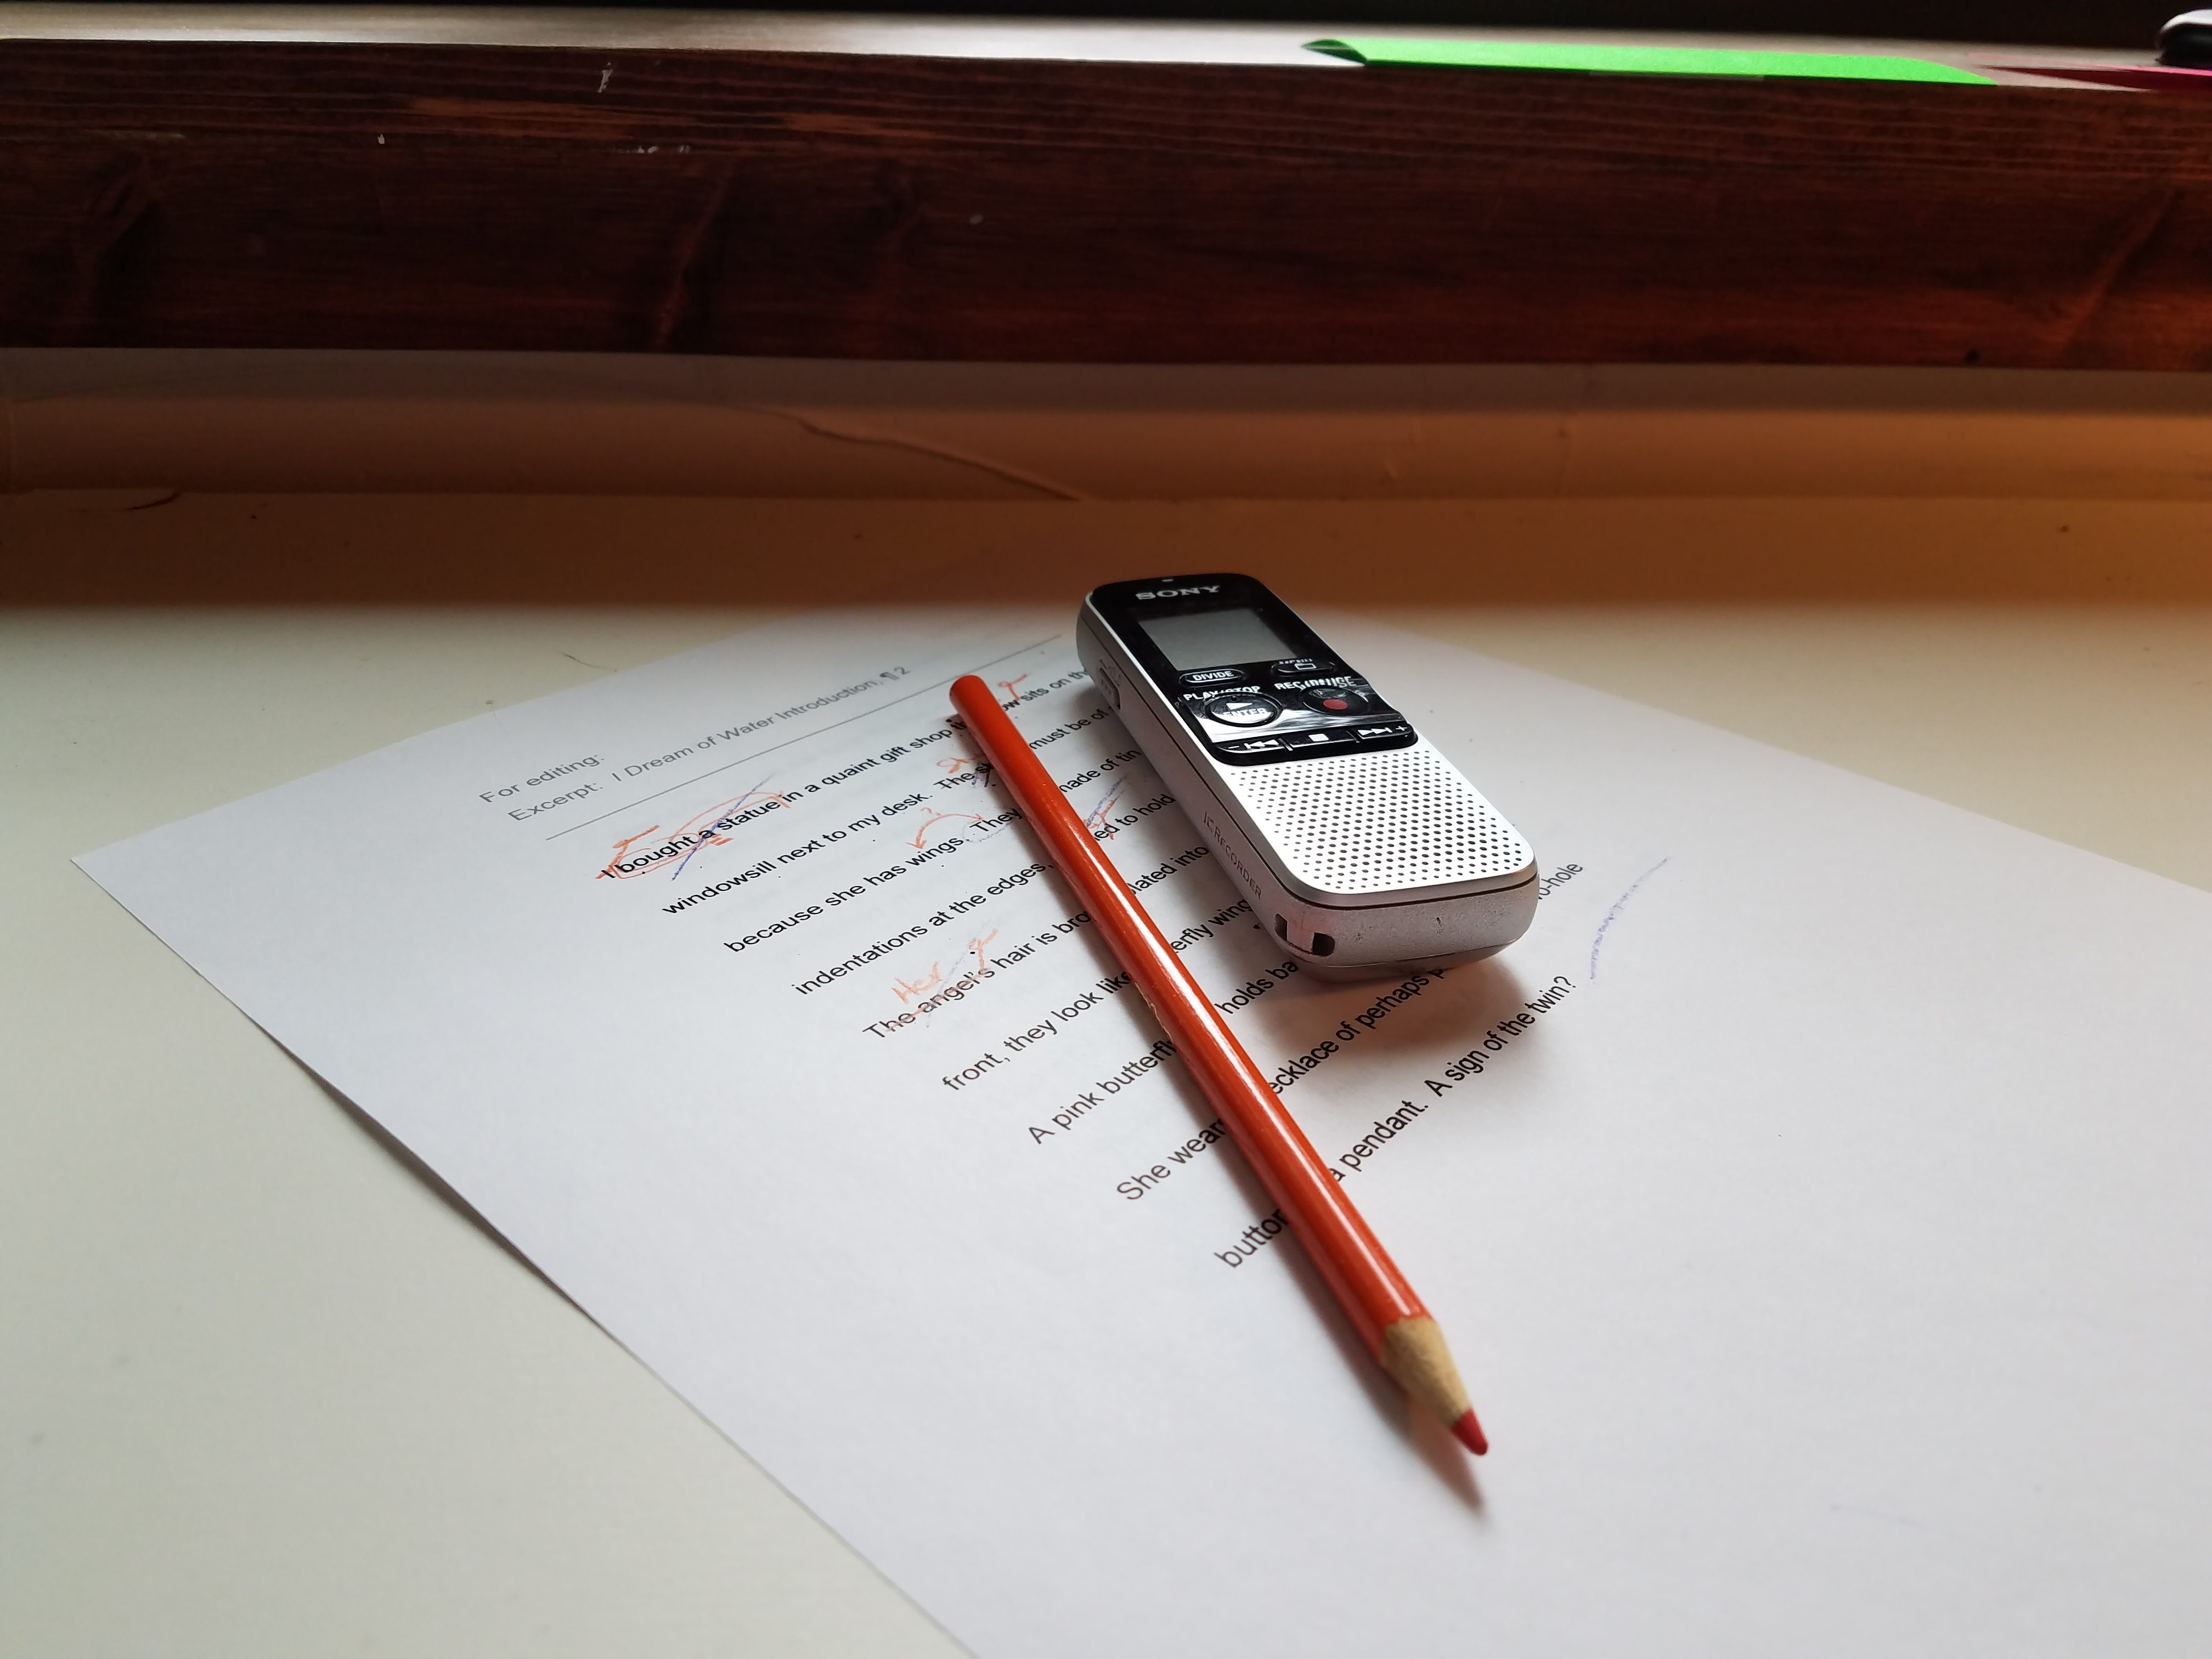 Orange colored pencil and voice recorder laying on top of printed page for editing